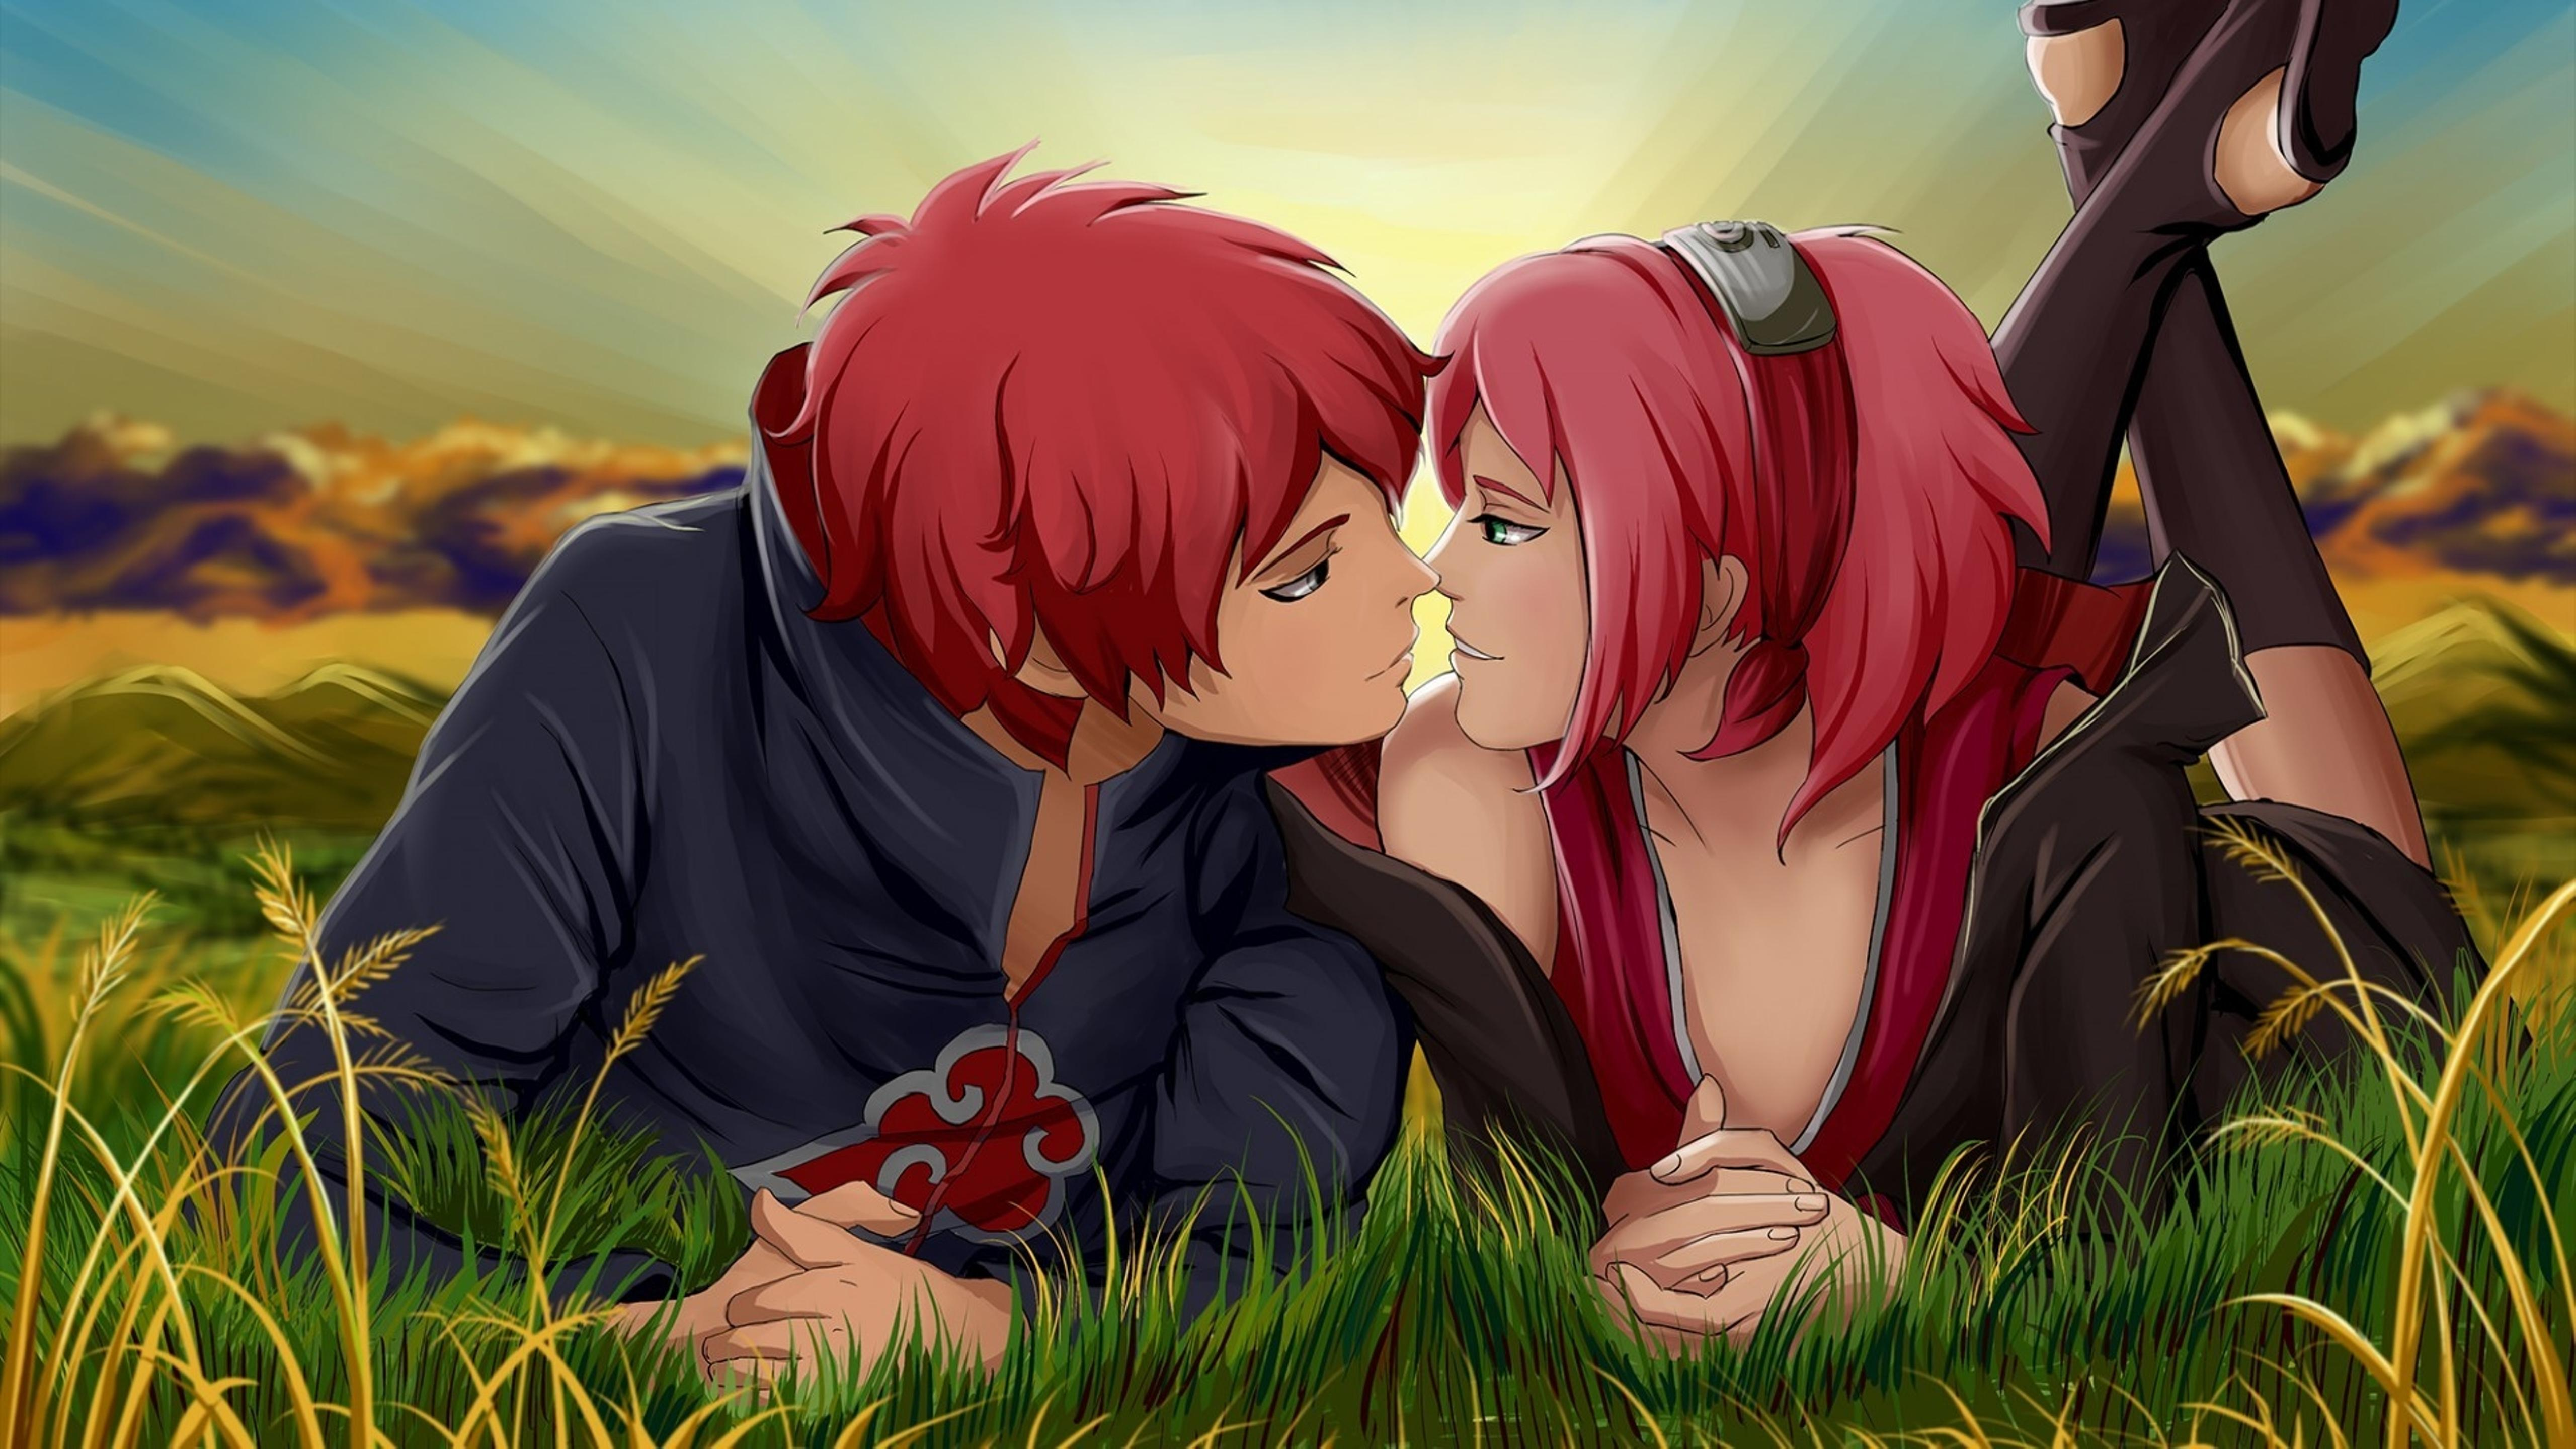 An Anime Couple With Red Hair Kissing In The Grass